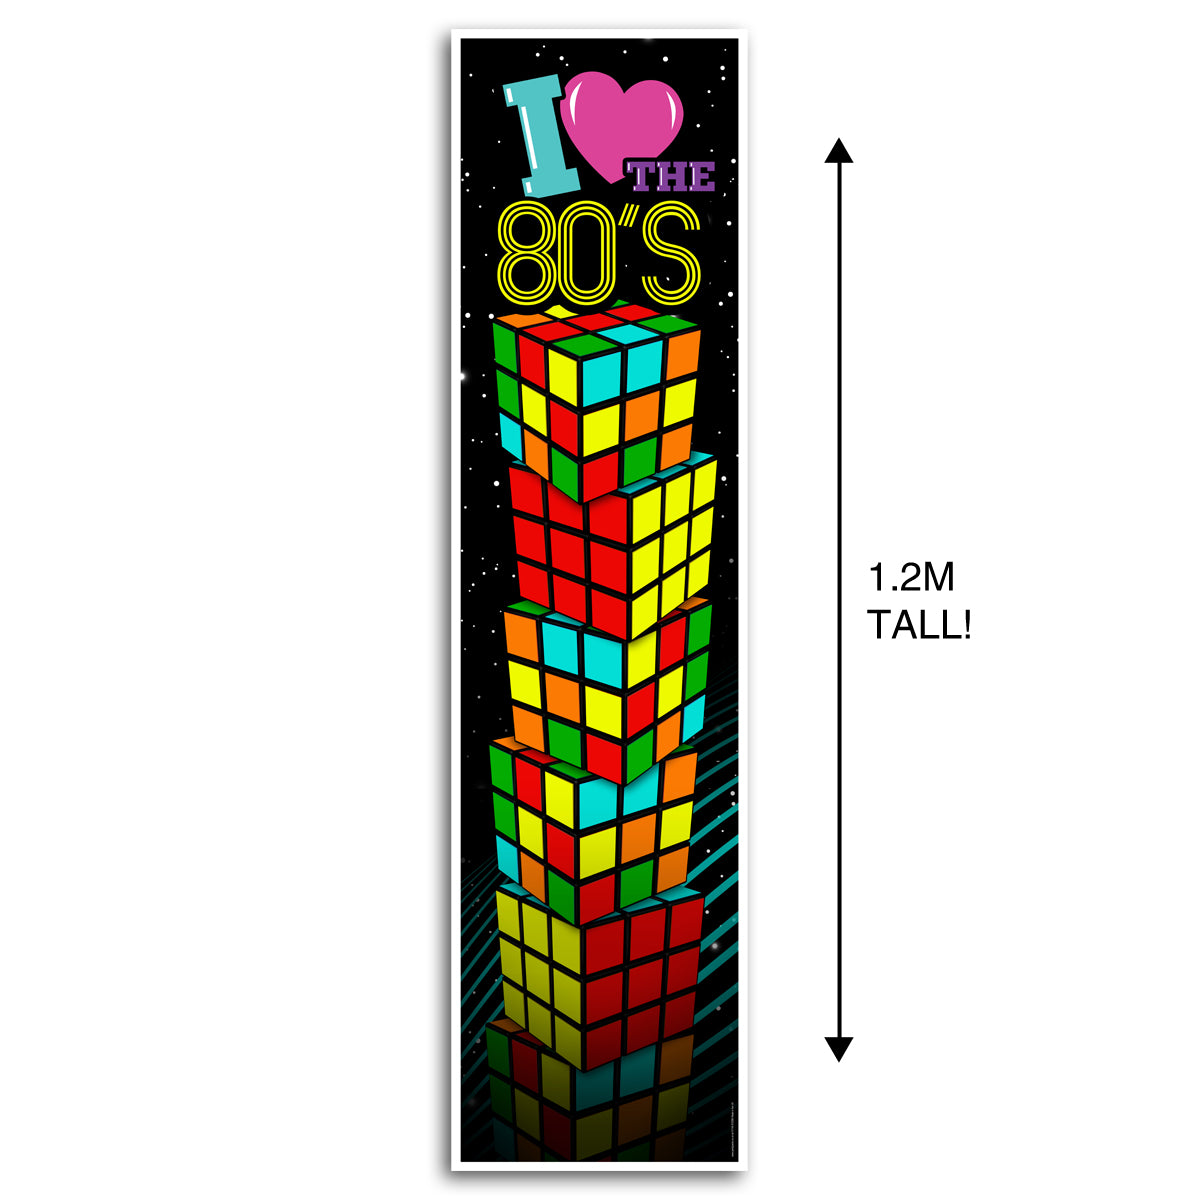 1980's I Love the 80's Puzzle Cube Portrait Wall & Door Banner Decoration - 1.2m